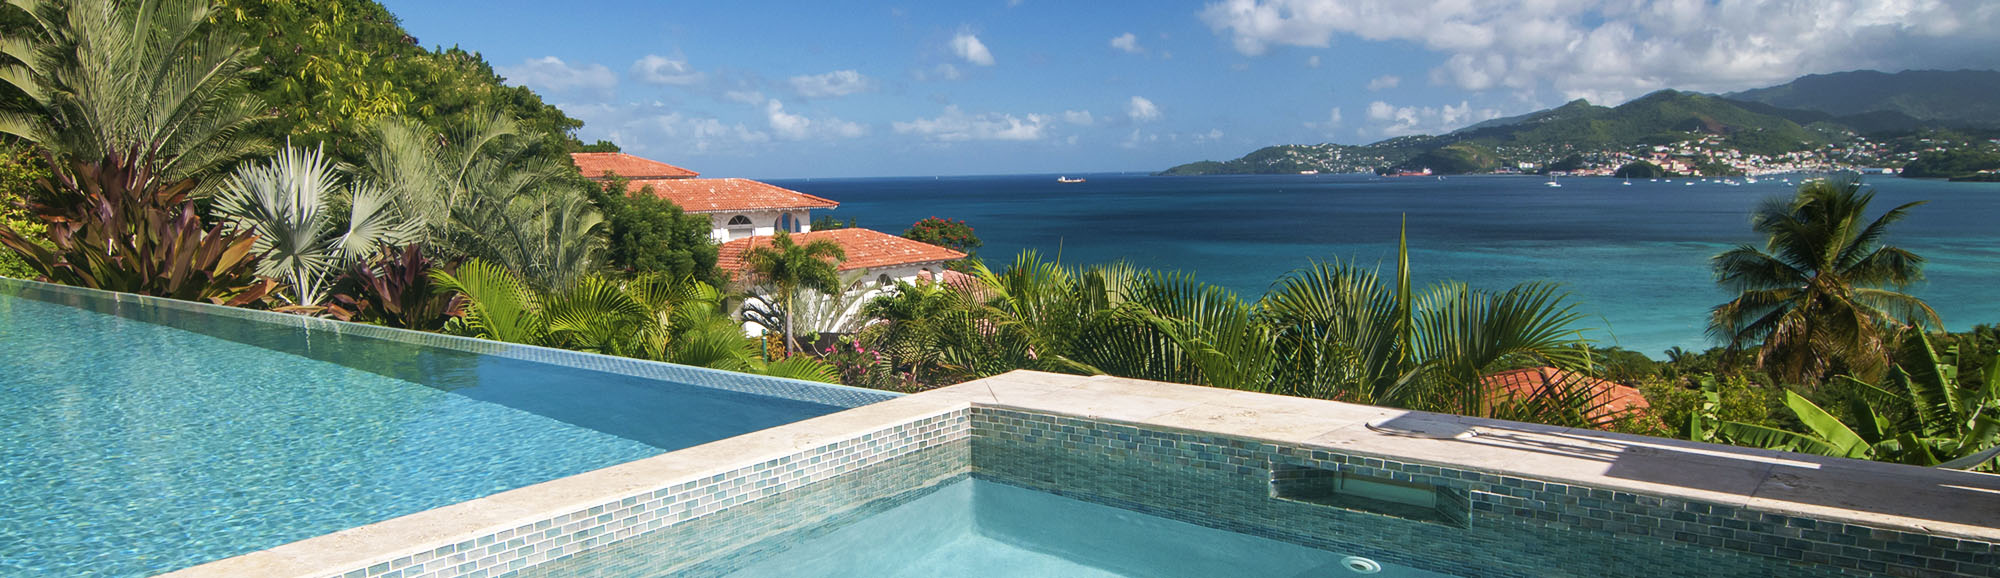 Cinnamon_Heights_Villa_grenada